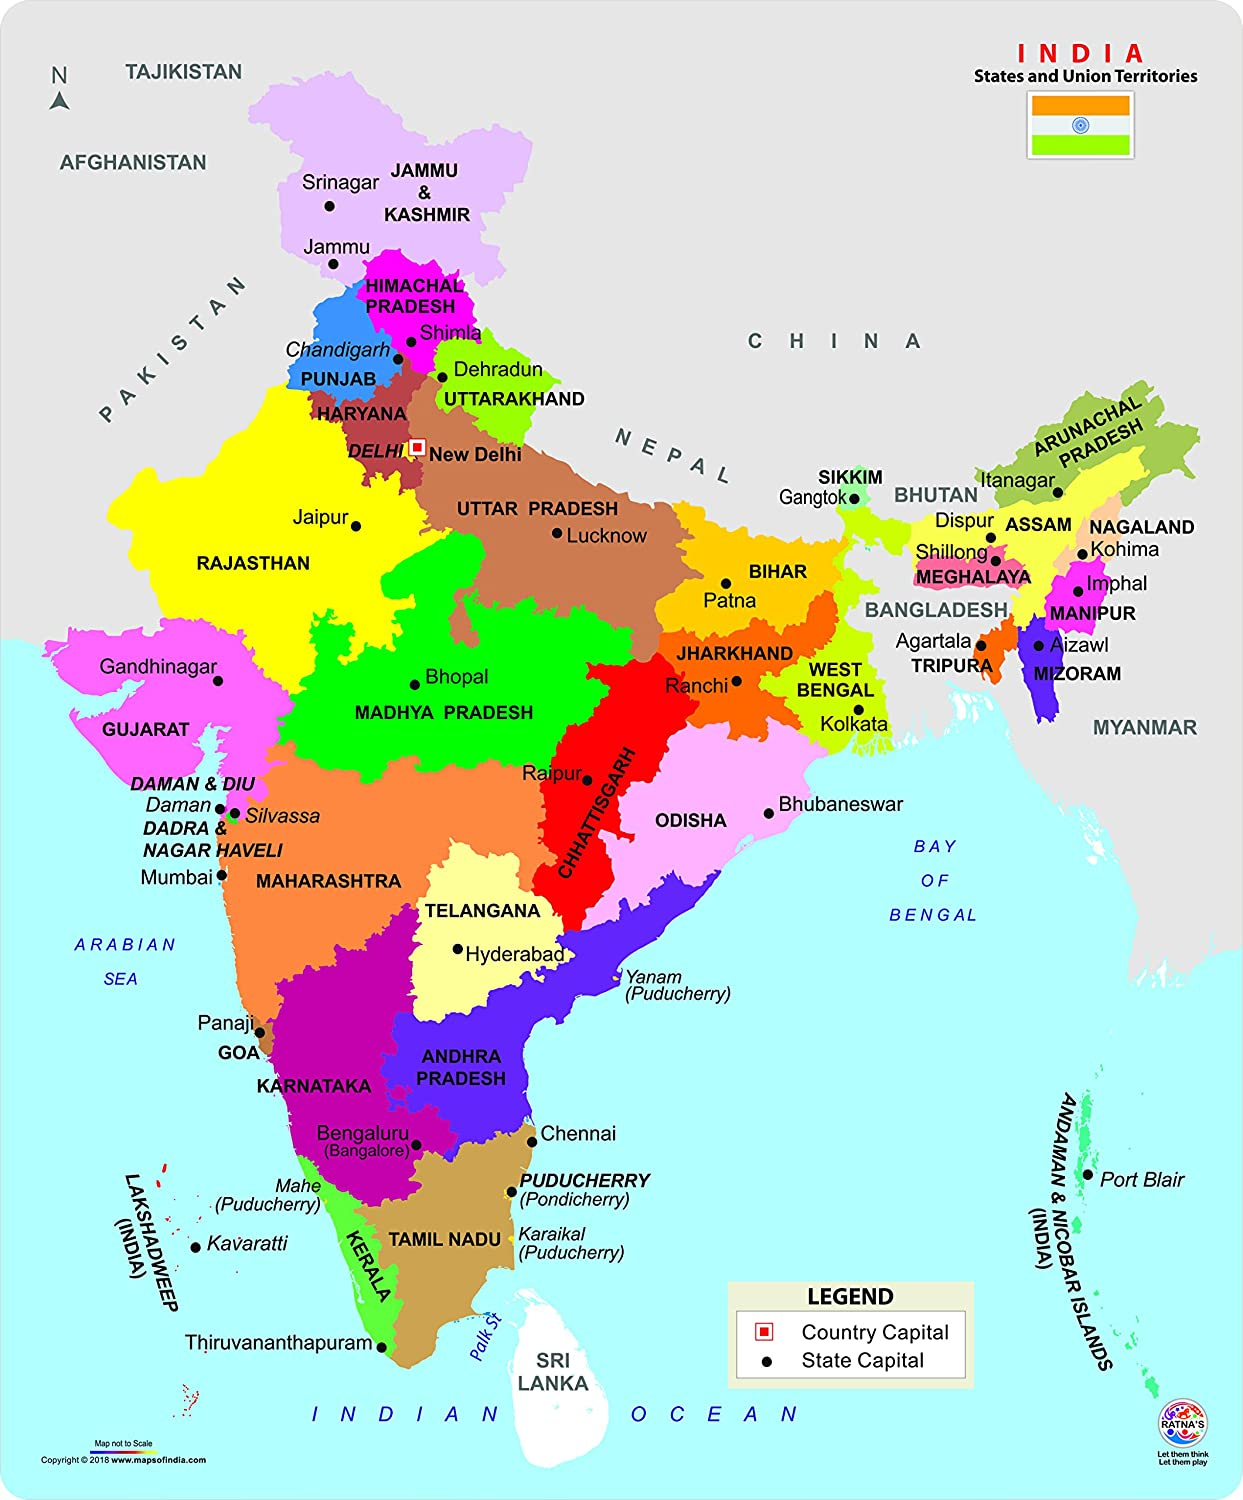 Ratna's Educational India MAP Jigsaw Puzzle (99 Pieces) on china map, africa map, greece map, indian subcontinent map, california map, germany map, sri lanka map, croatia map, karnataka map, andhra pradesh map, france map, arabian sea map, poland map, malaysia map, canada map, norway map, ireland map, iceland map, cyprus map, texas map, cuba map, korea map, thailand map, czech republic map, russia map, argentina map, egypt map, italy map, europe map, maharashtra map, portugal map, new zealand map, japan map, time zone map, australia map, brazil map, spain map,